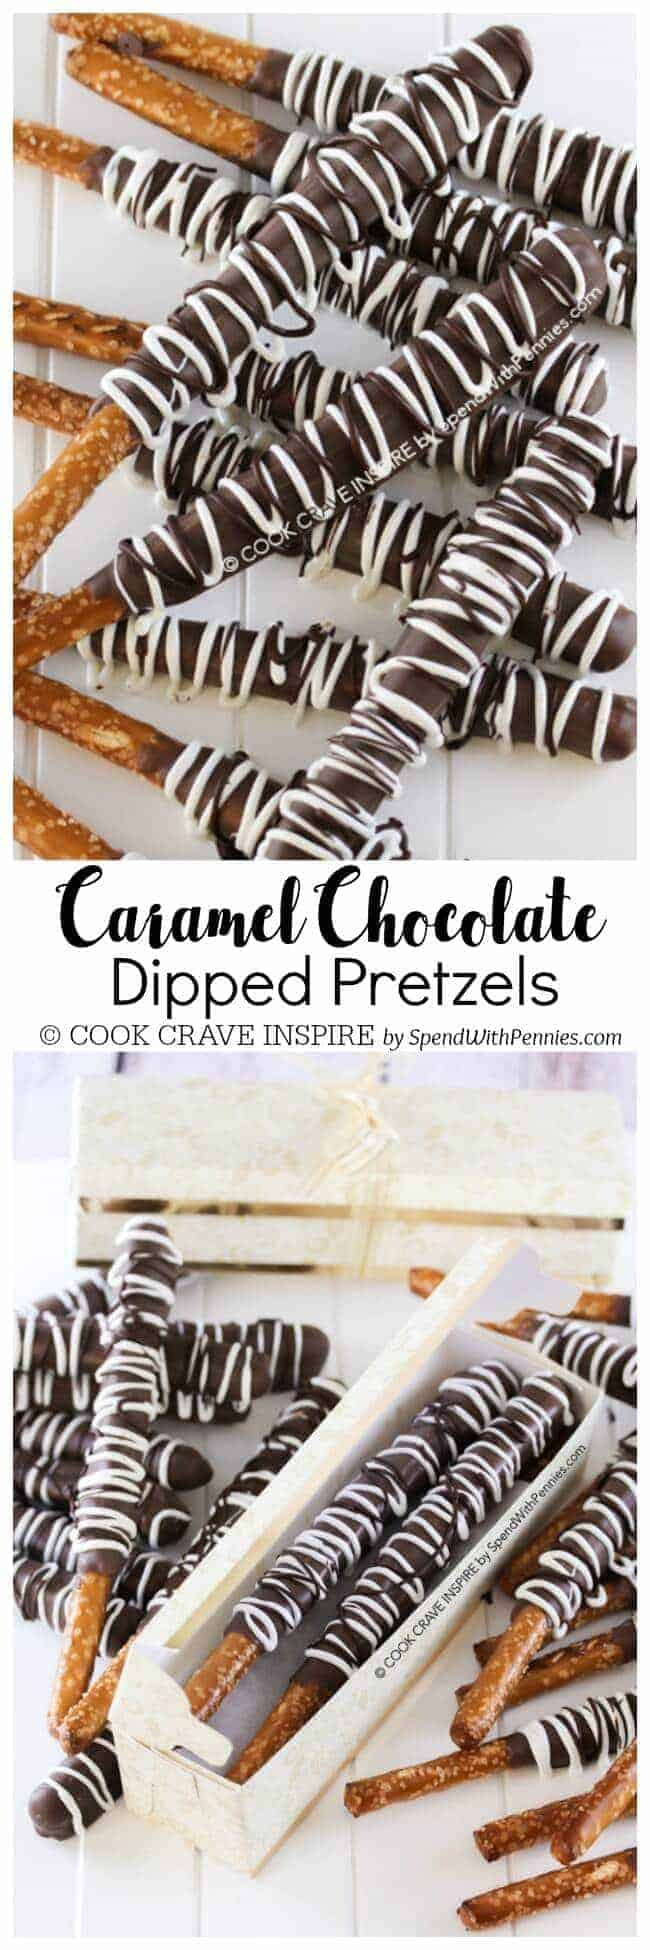 caramel dipped pretzels covered in chocolate with a title